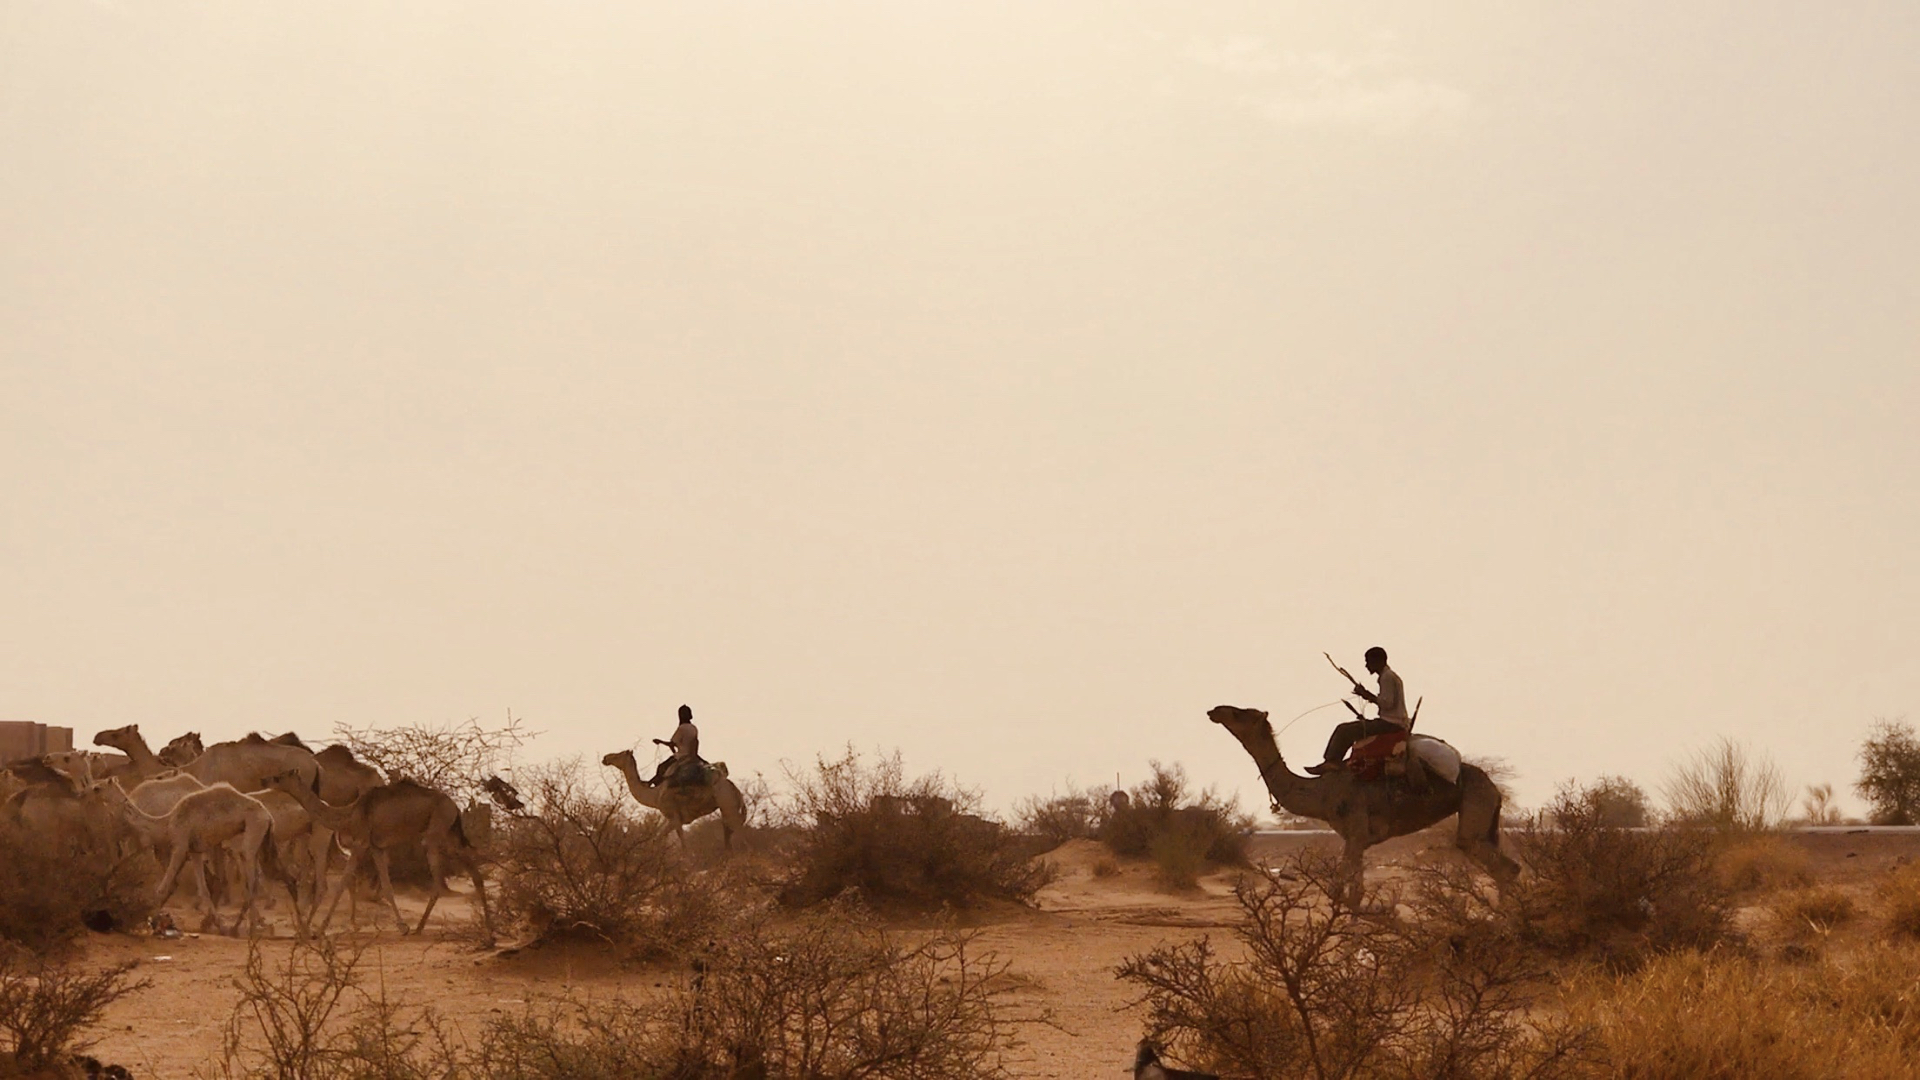 A man drives his camel caravan out into the desert, past the last security checkpoint in Gao. Beyond the perimeter of security forces, bandits and armed groups continue violent attacks, driving fear and ongoing instability. But life continues for traders and herdsmen who have travelled these routes for centuries. For children beyond the security of Gao, school is rare and violence is common.